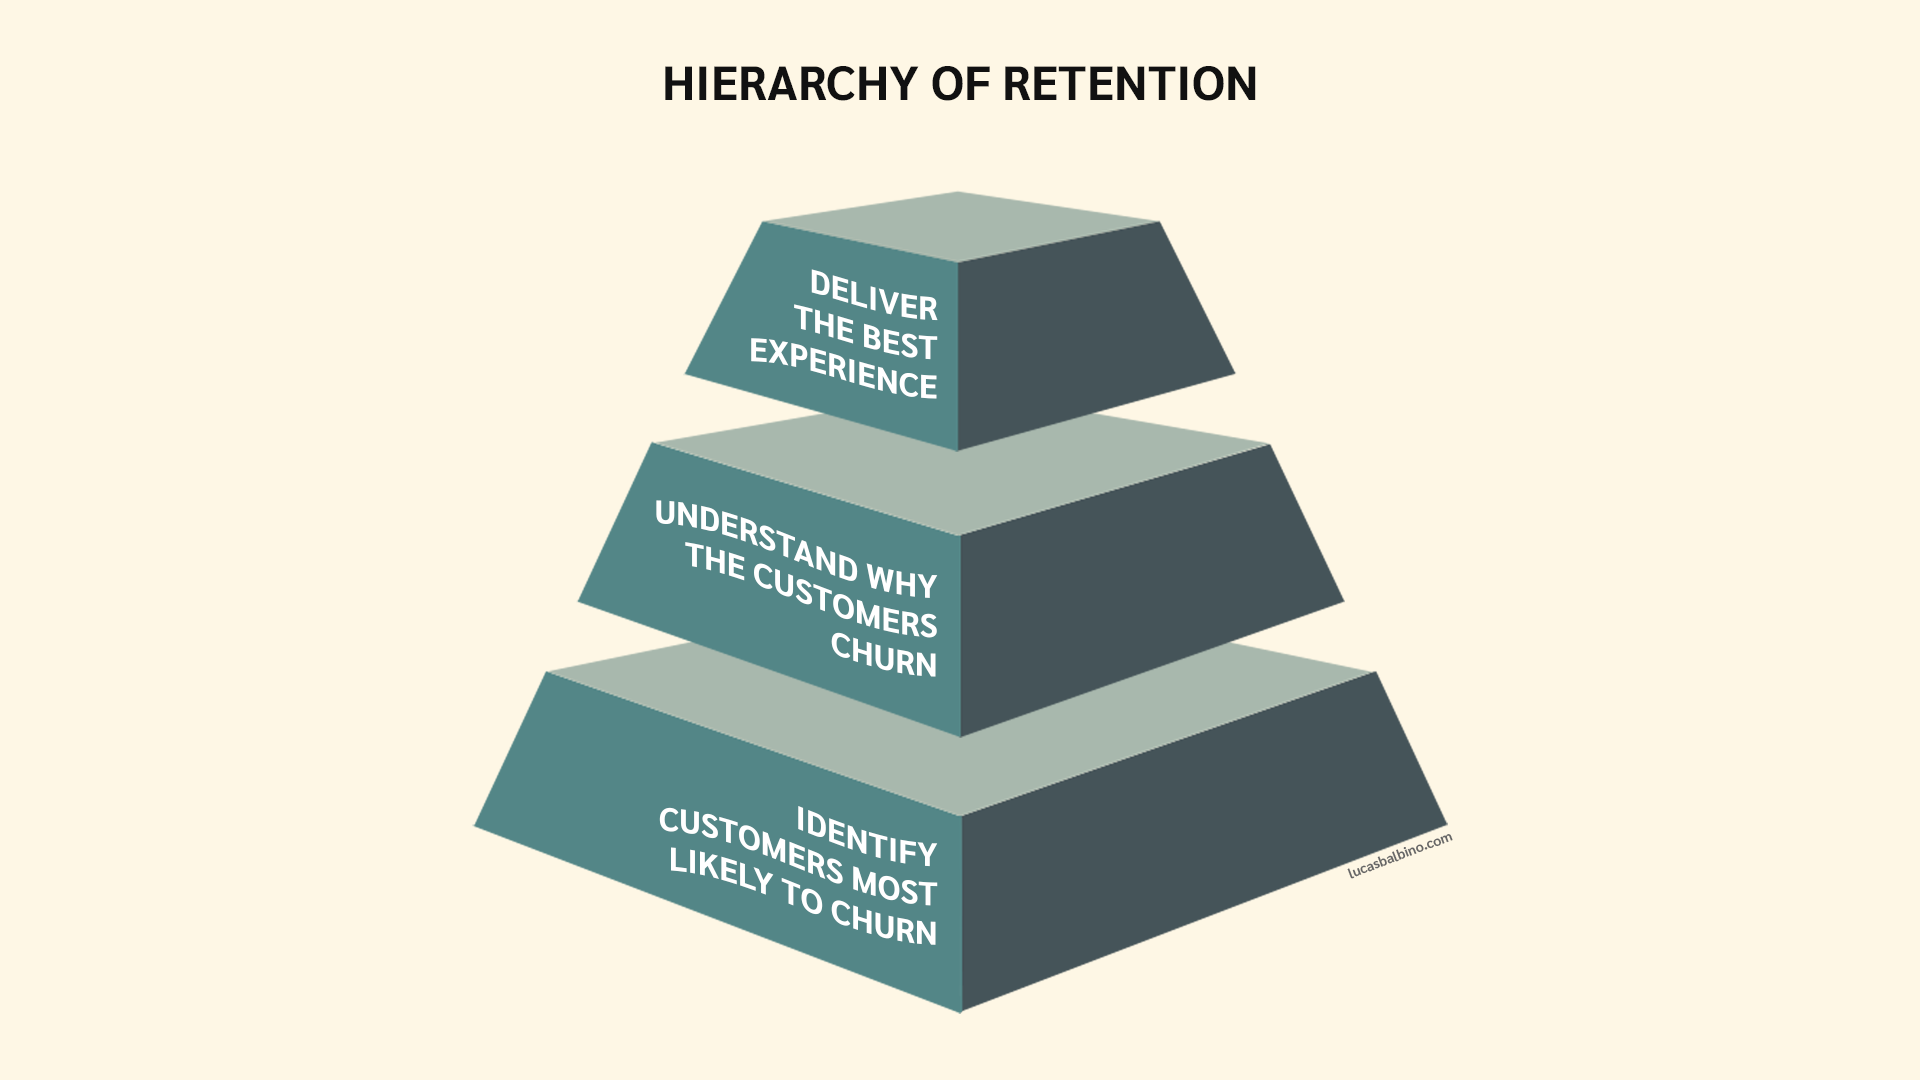 Hierarchy of Retention presented as a pyramid with 3 levels